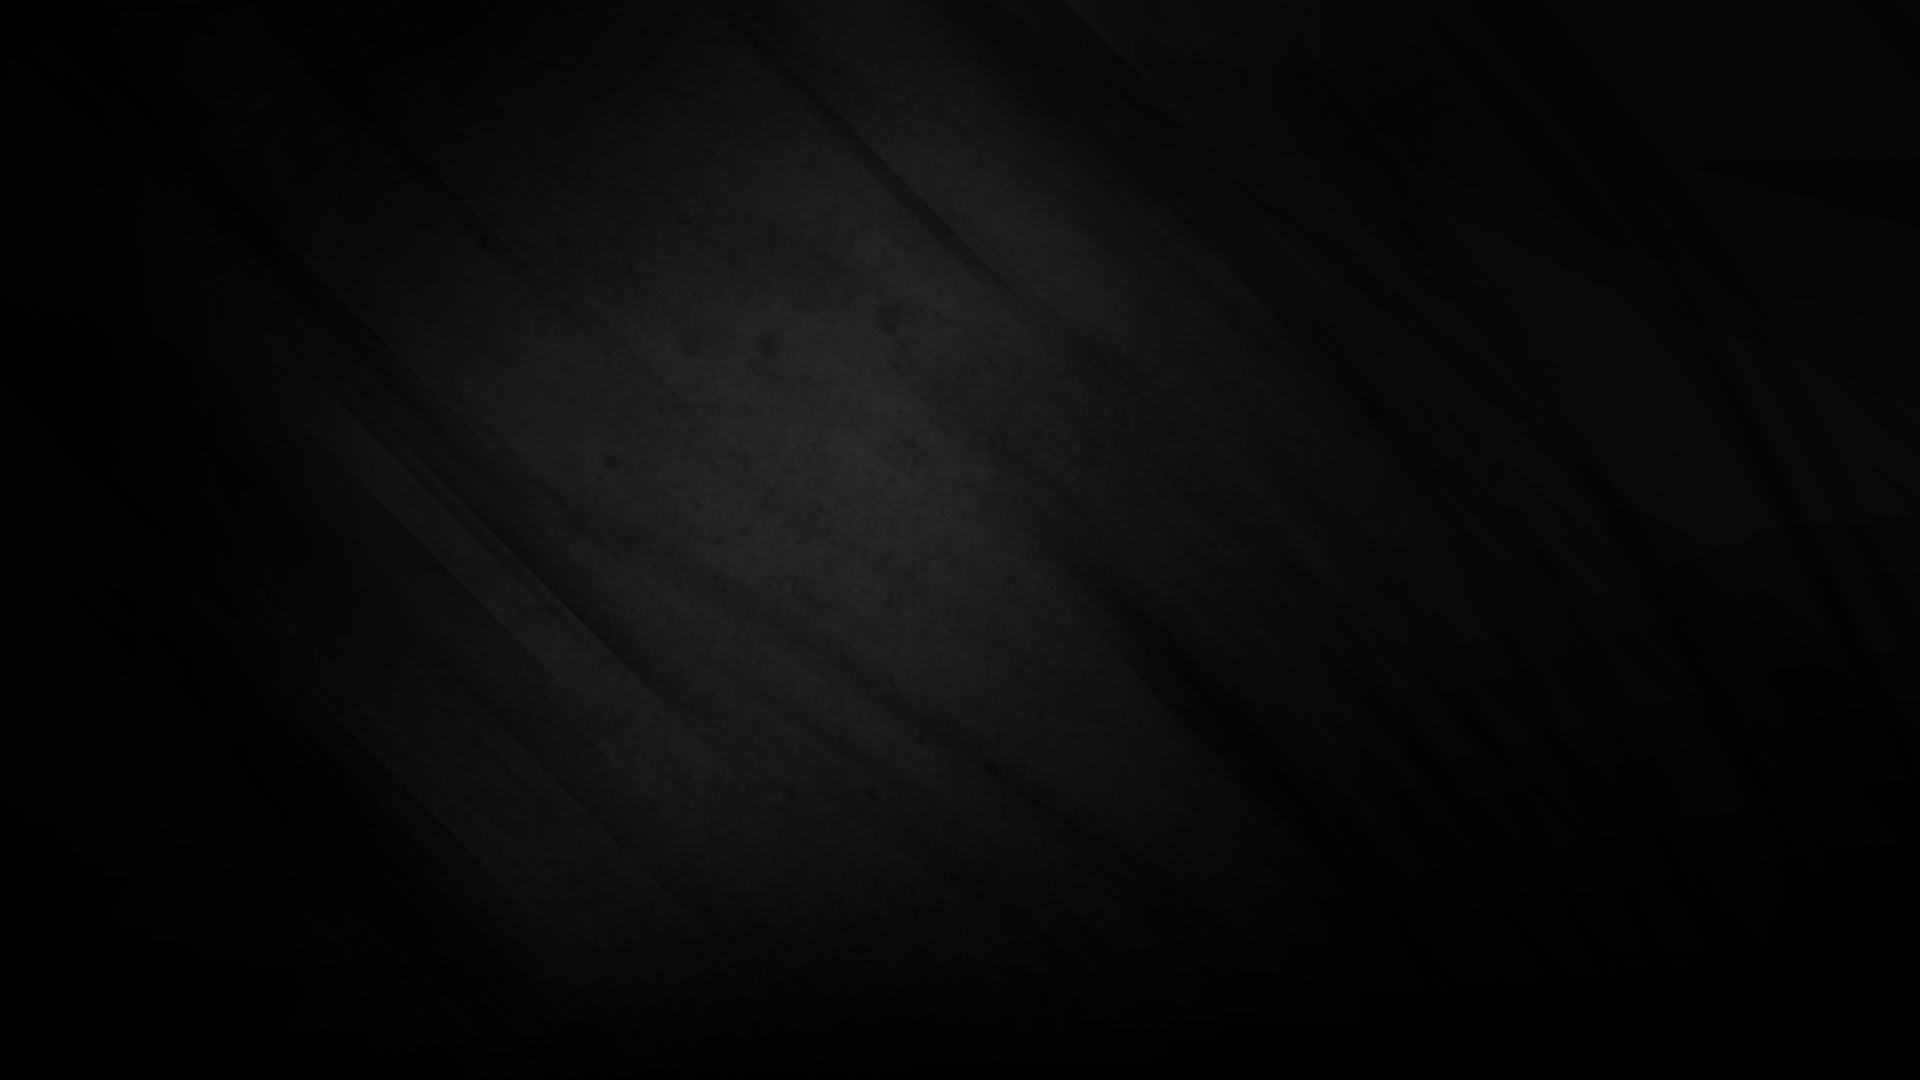 Black Wallpaper Hd Hd Background Images Photos Pictures Yl Computing